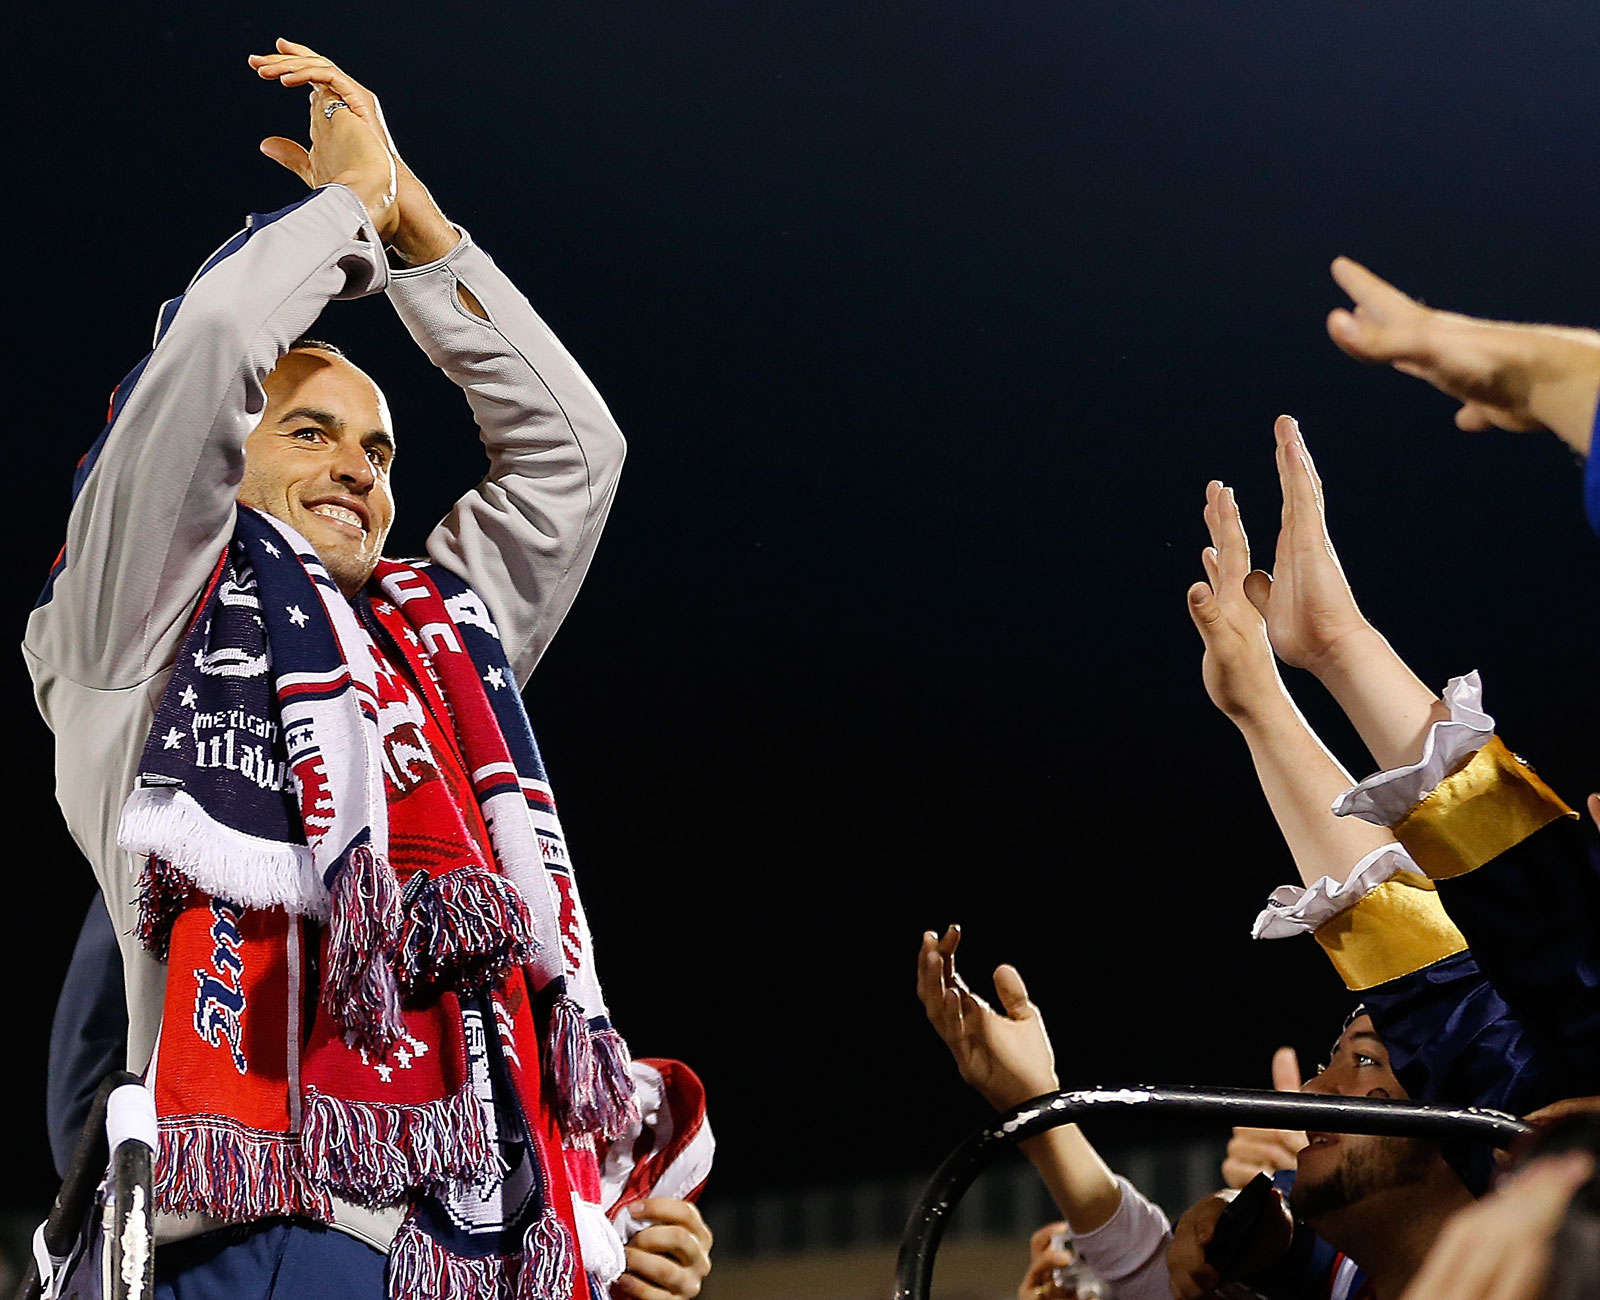 Landon Donovan in front of US Soccer supporters the American Outlaws